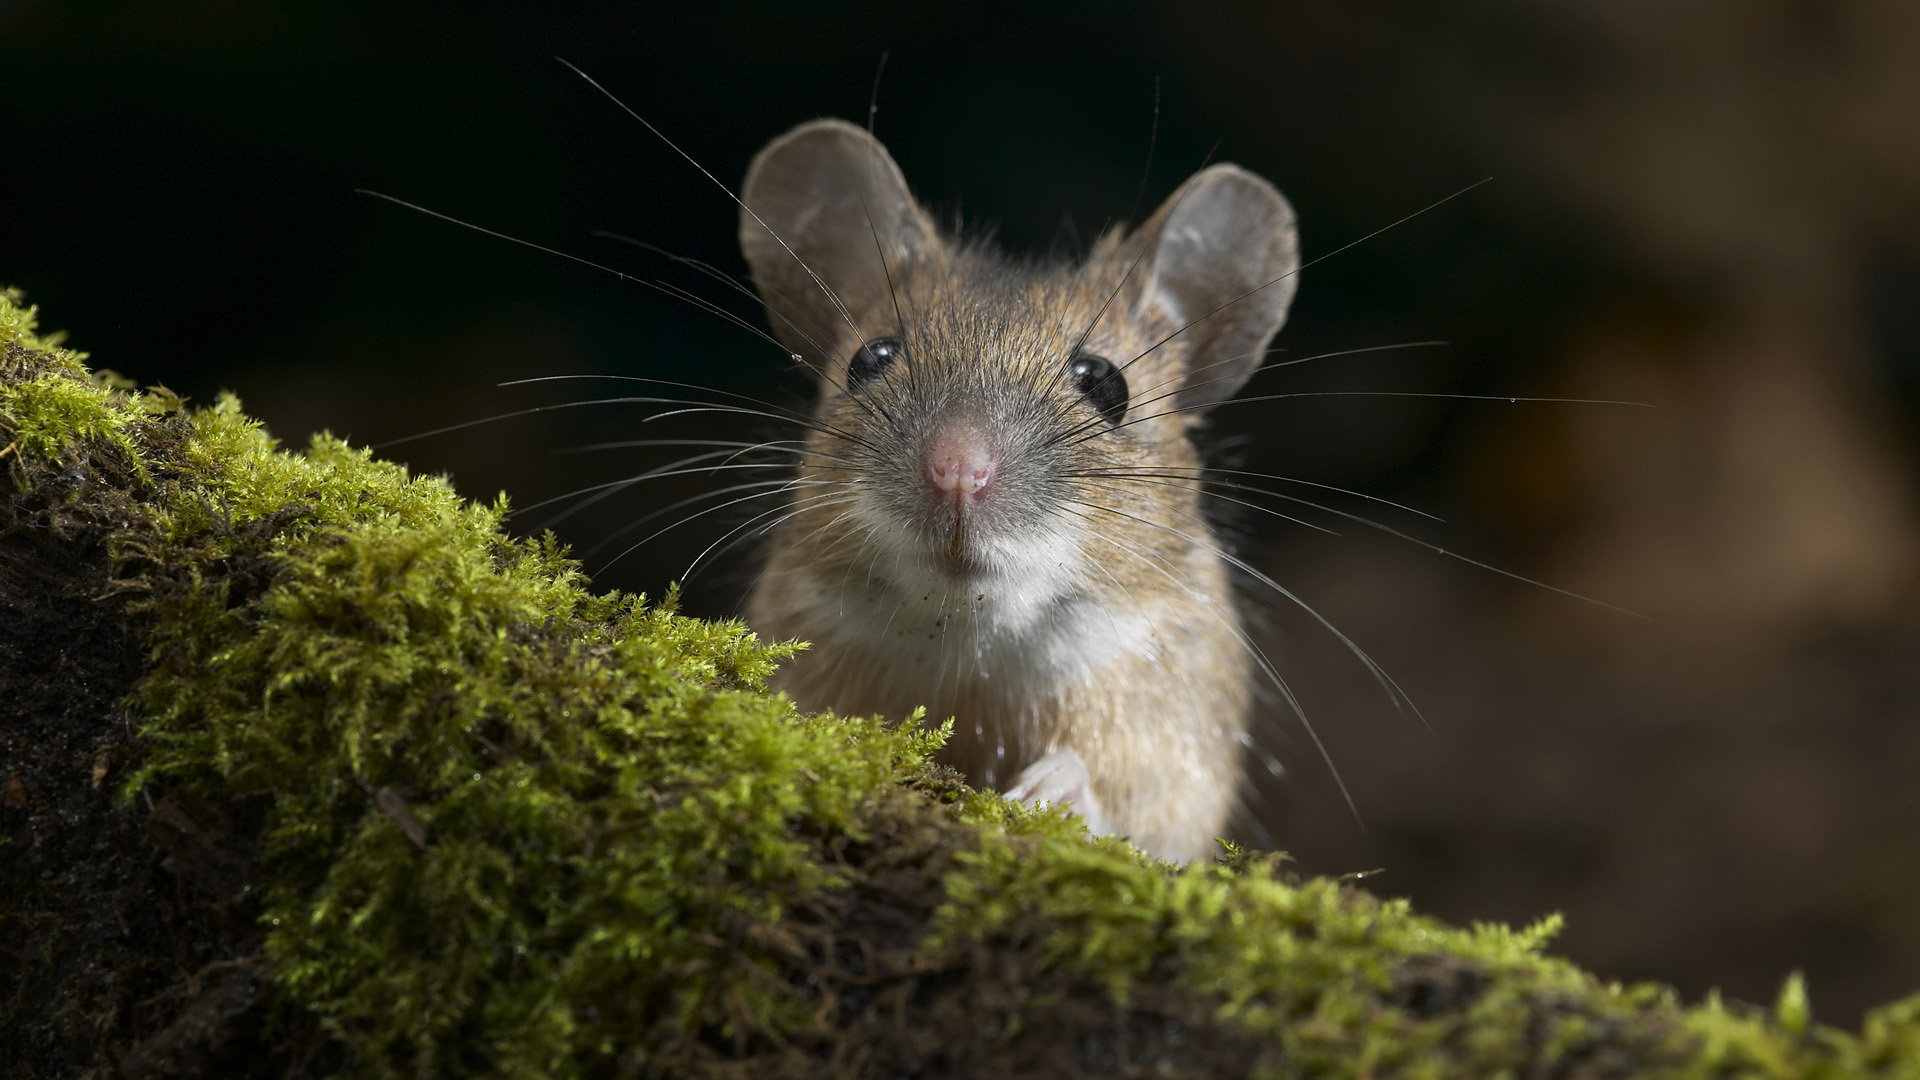 Mouse Full HD Wallpaper And Background Image